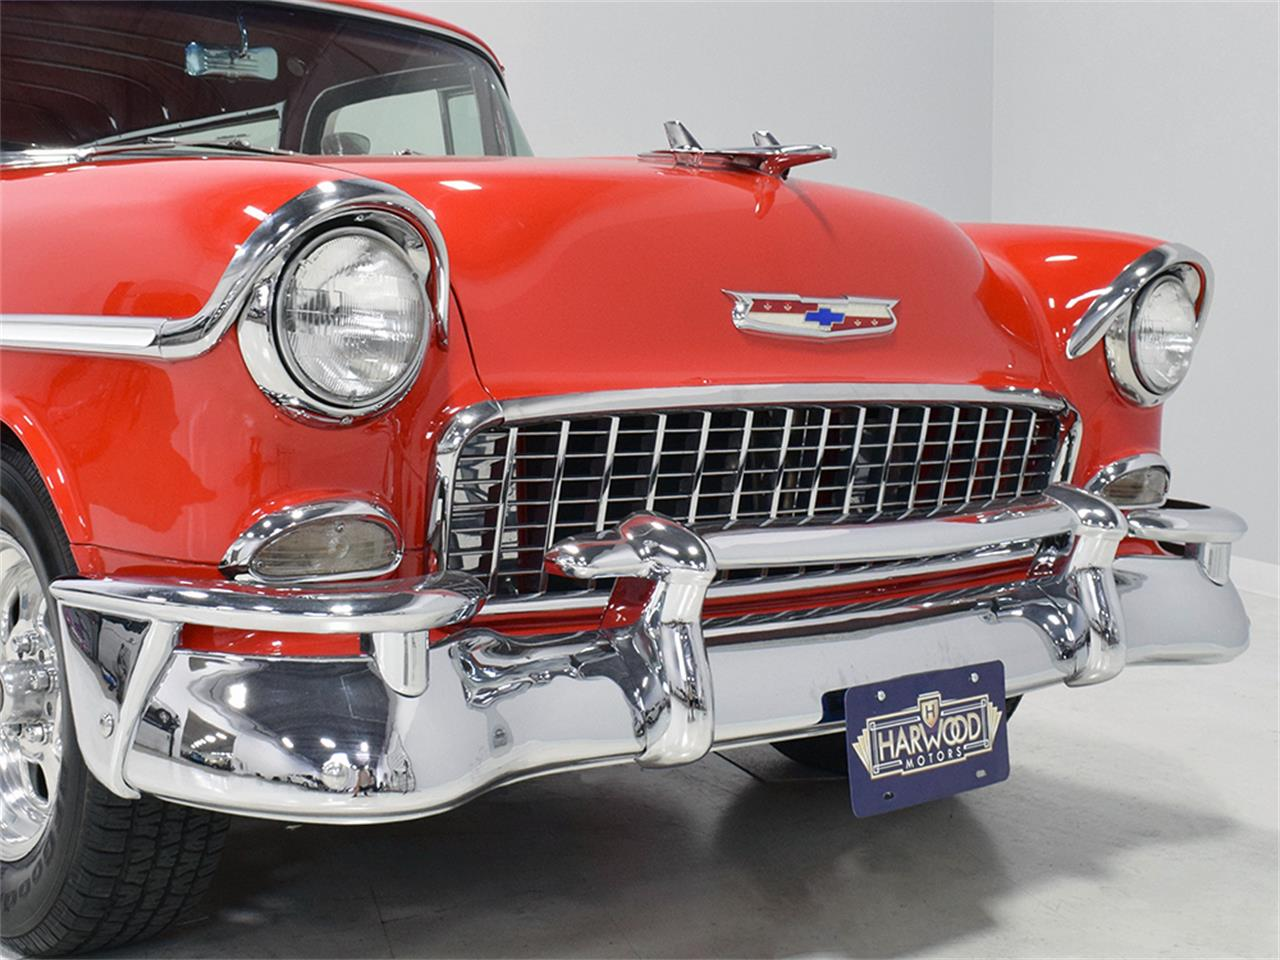 Large Picture of 1955 Chevrolet Nomad located in Macedonia Ohio - $69,900.00 - O8YP